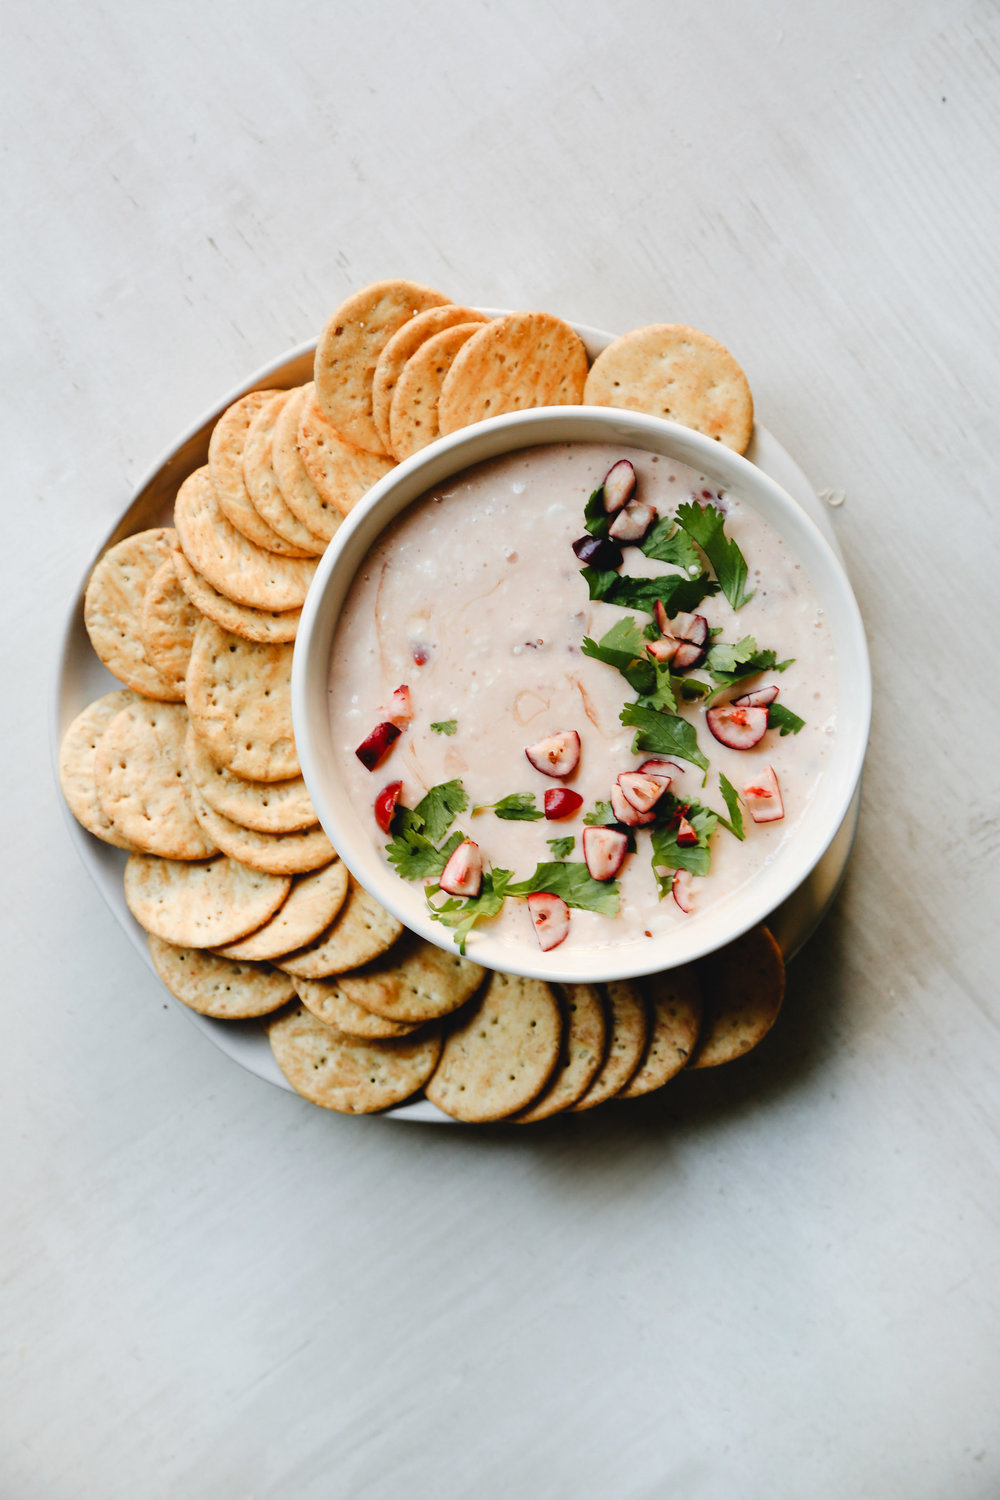 PEPPER JELLY + CREAM CHEESE DIP - Pepper jelly + cream cheese is nothing new. In fact, it's been around for longer than I've probably been alive. And yet, it's just too good to give it up (even if it is something grandma would make). This easy spin on the classic (simply beat the cream cheese and pepper jelly together instead of pouring the pepper jelly on top of the cream cheese) is a fun way to modernize the recipe just a bit. Add in orange zest or a splash of tabasco for another twist, and garnish with pomegranate seeds or chopped fresh cranberries and fresh herbs (I like cilantro). This dip will need to chill for at least a few hours, if not overnight, so it's perfect for make ahead situations (just wait to add the garnishes until right before serving).